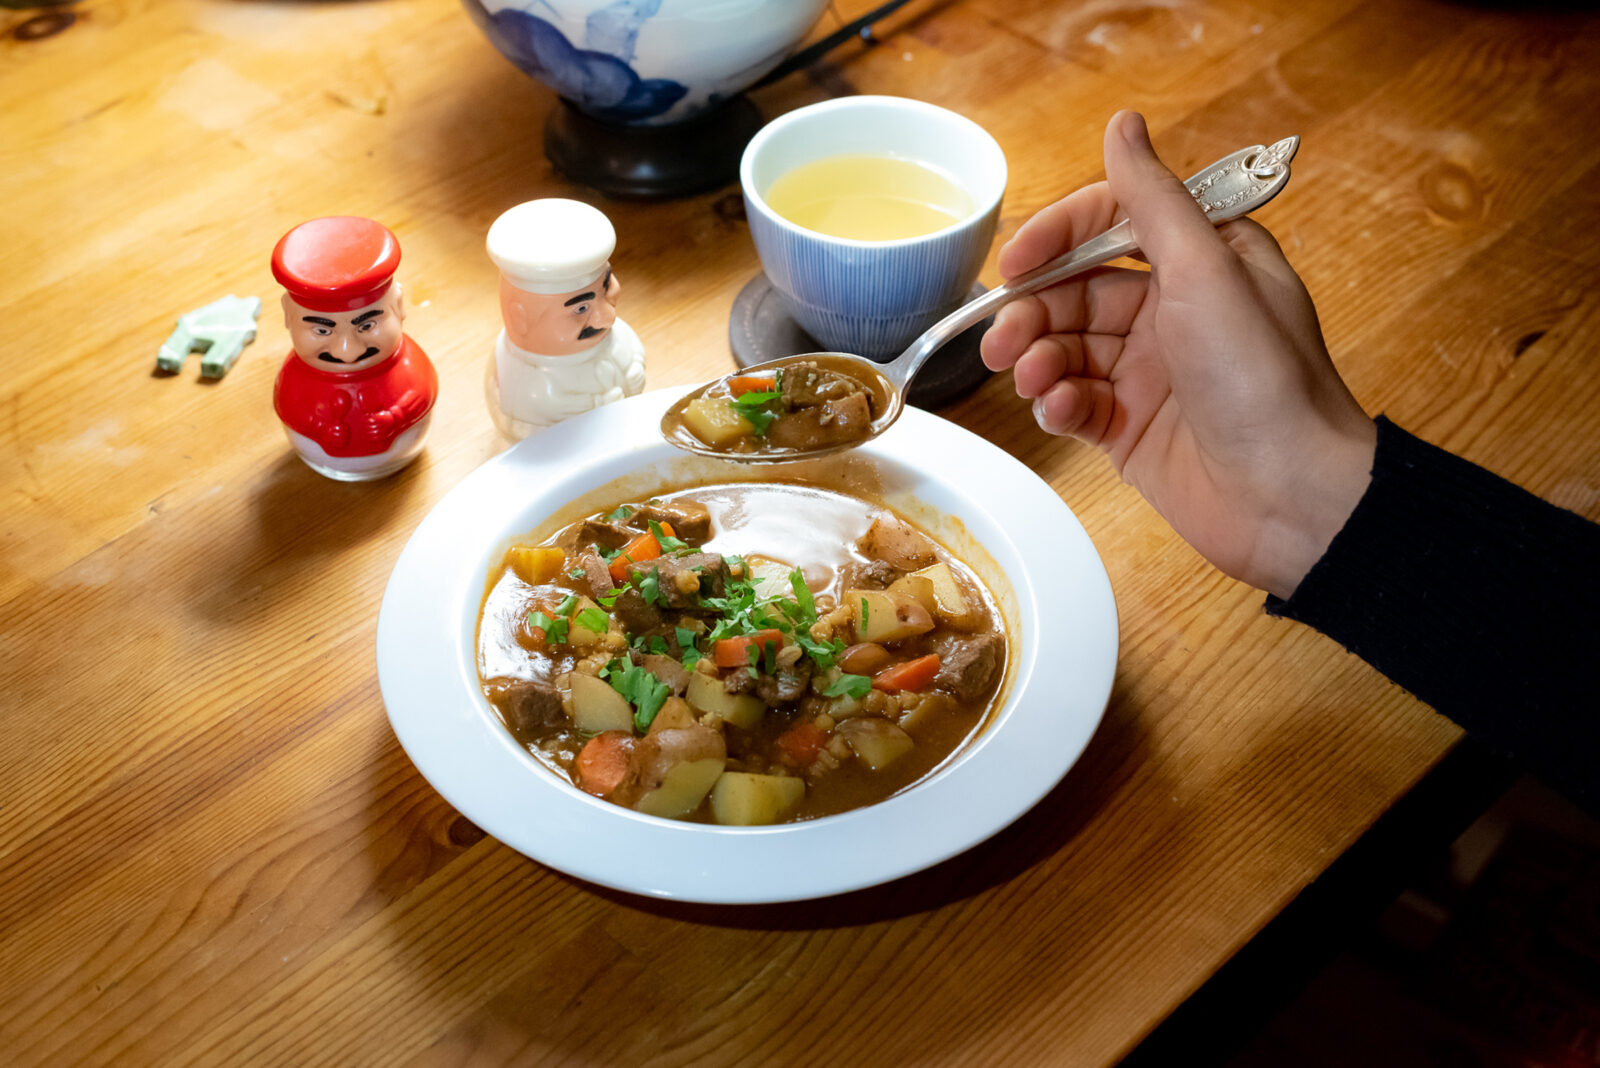 a pasta bowl with beef stew, including potatoes, carrots, beef, and parsley